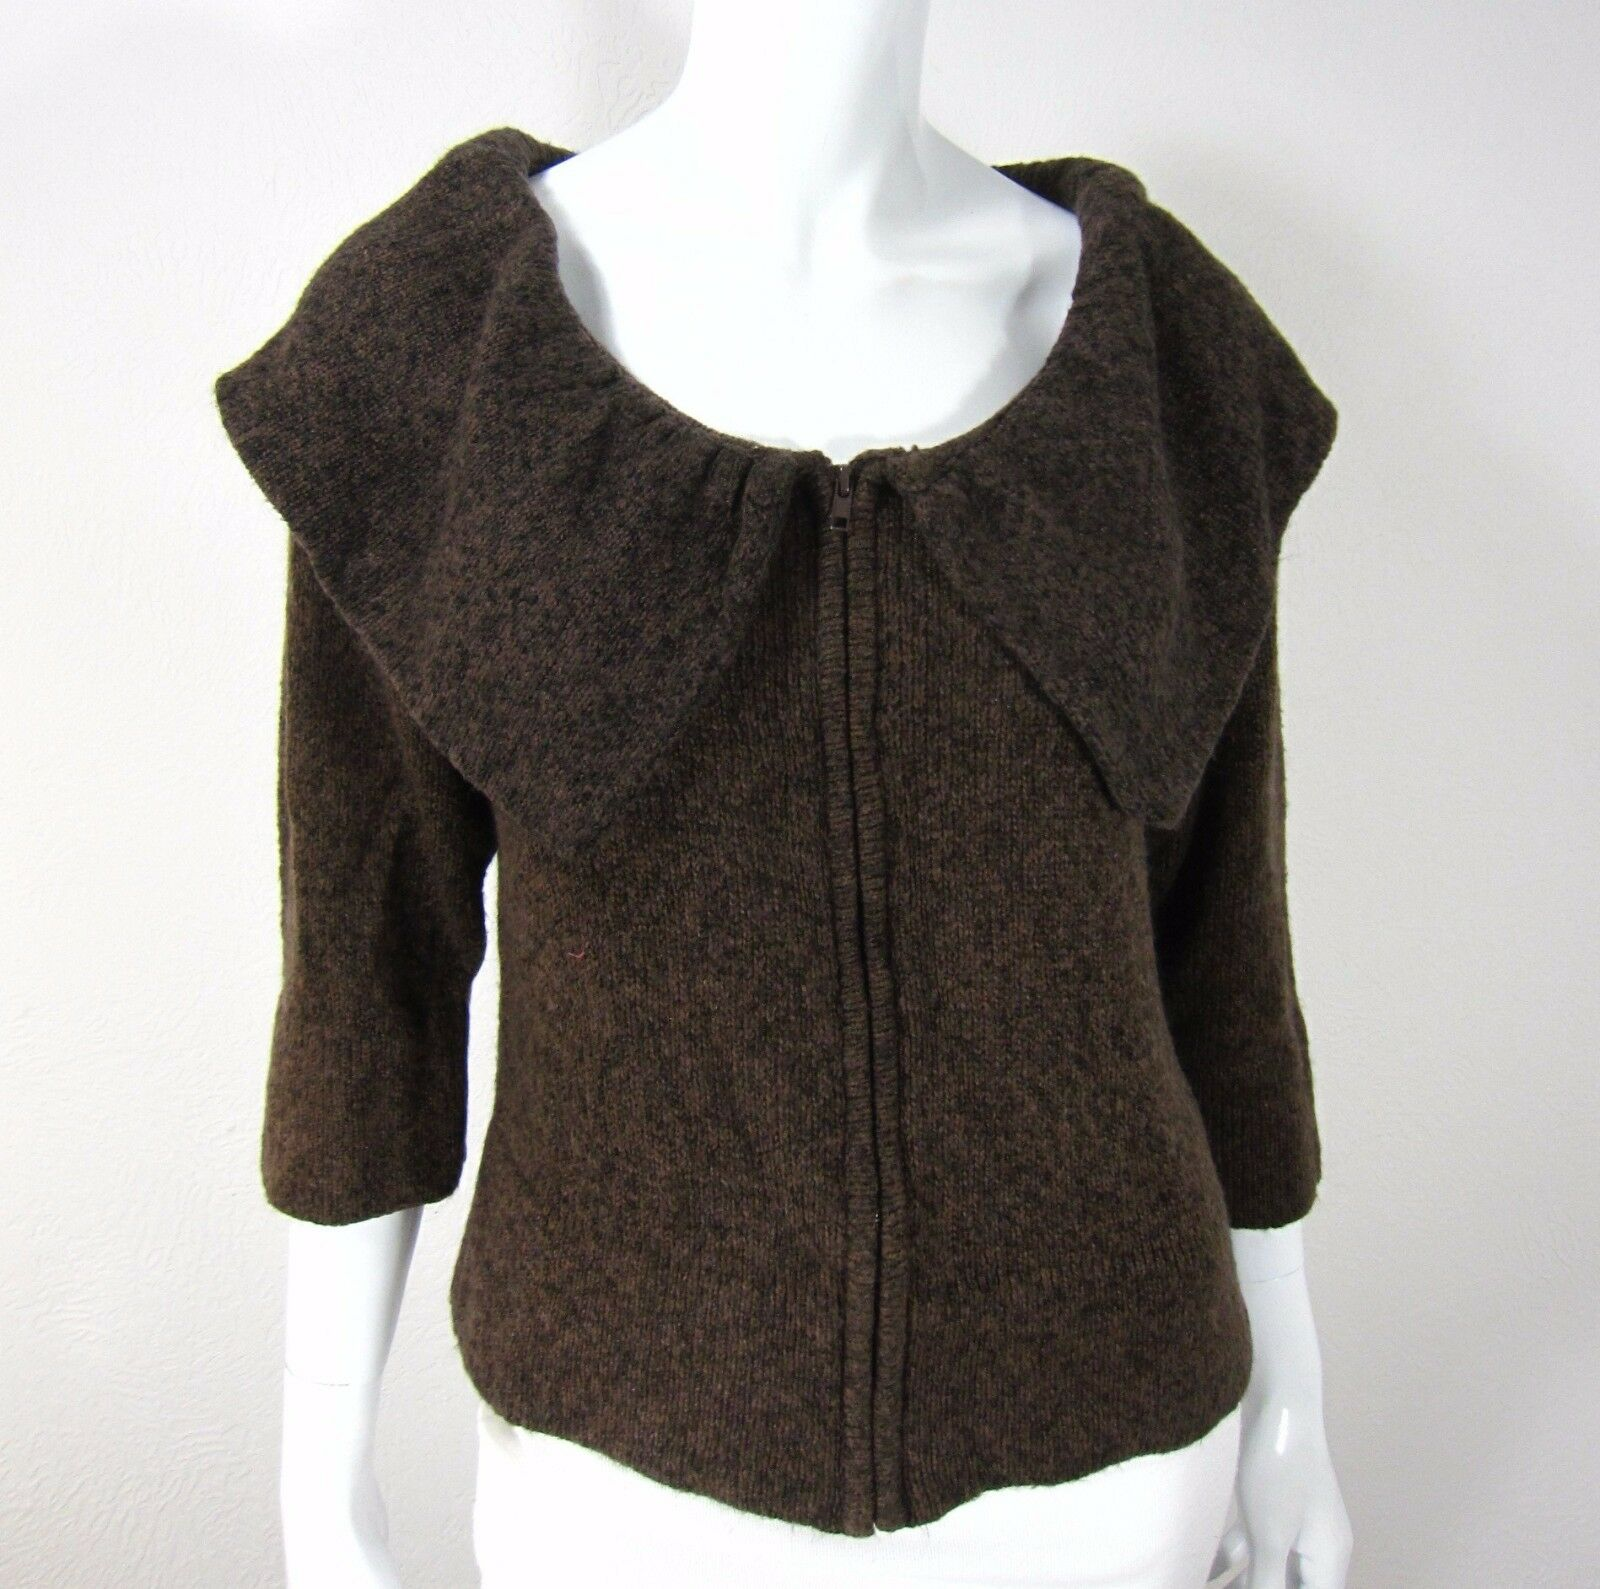 FEVER Short Sleeve Full Zip Cardigan Sweater Size M Medium Solid Brown Collared